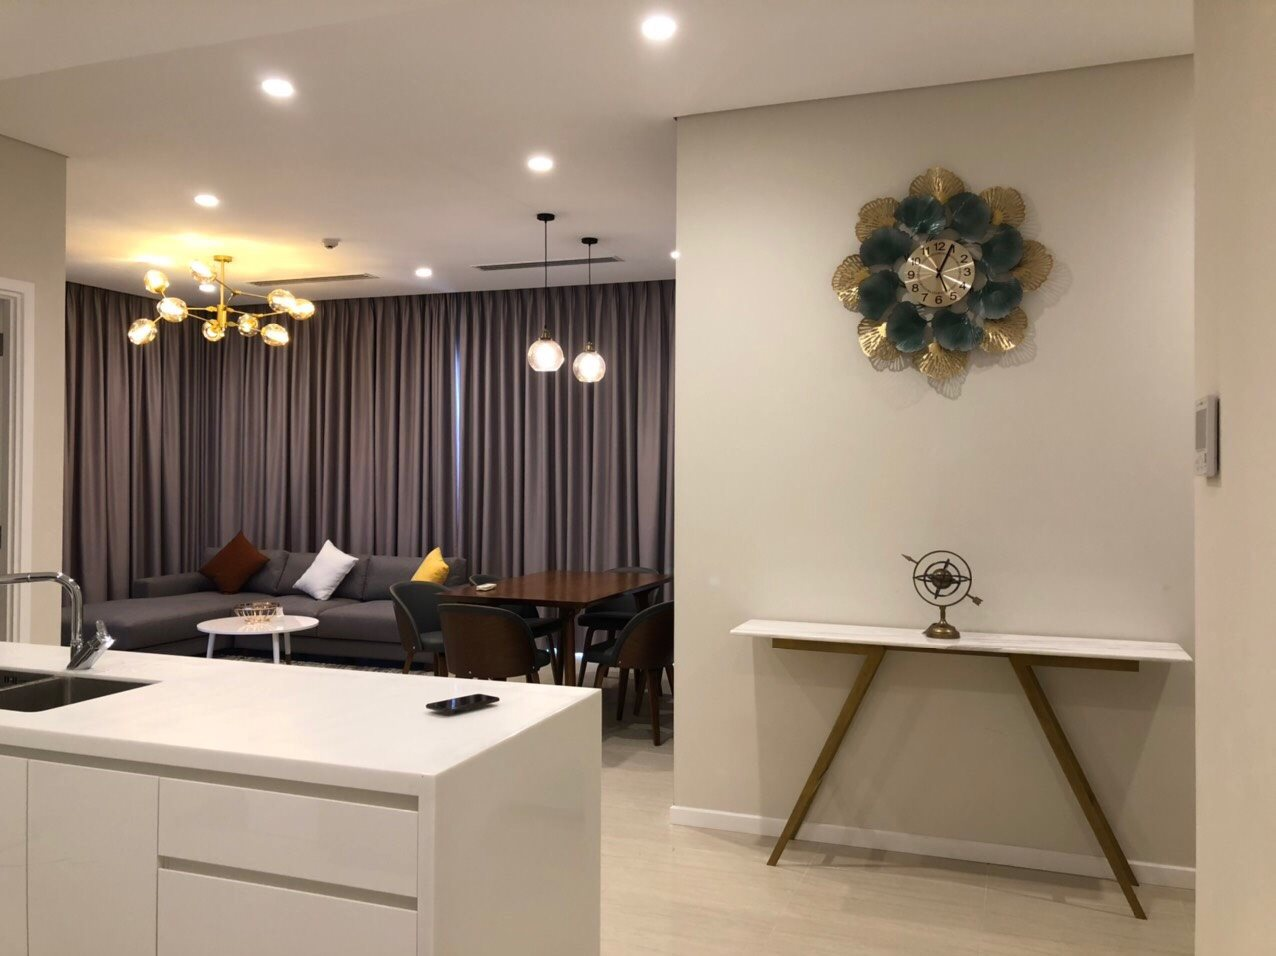 DI0222 - Diamond Island Apartment For Rent & Sale in Ho Chi Minh City - 3 bedroom